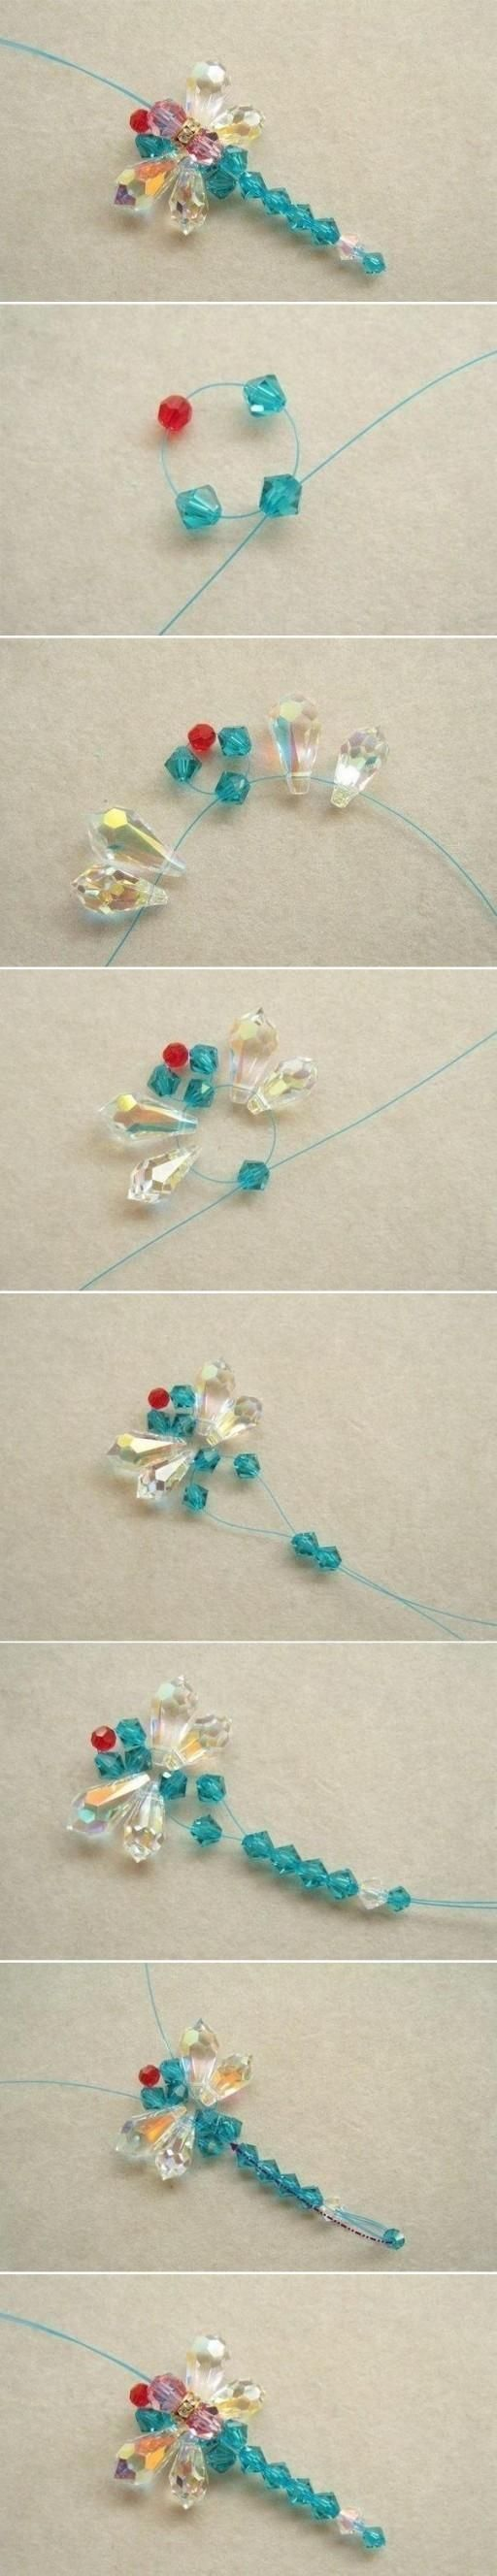 How to make Beaded Dragonfly step by step DIY tutorial instructions